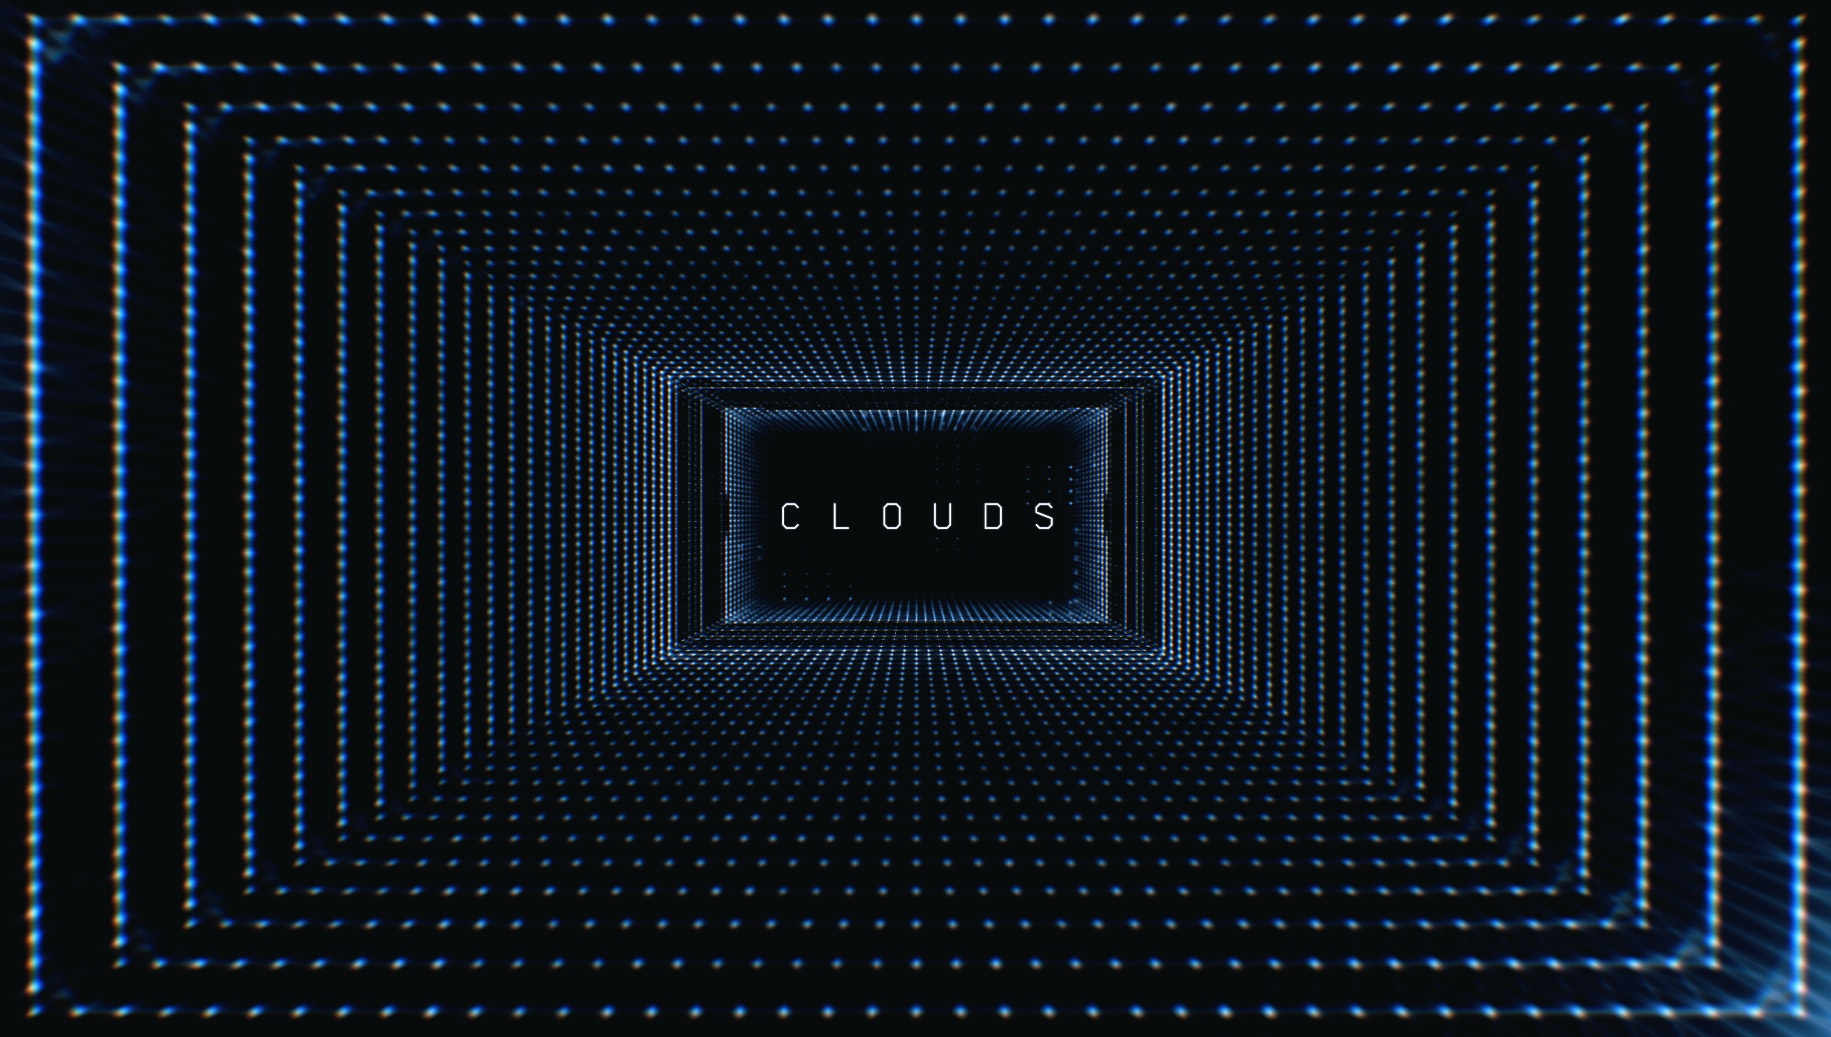 CLOUDS (rental)